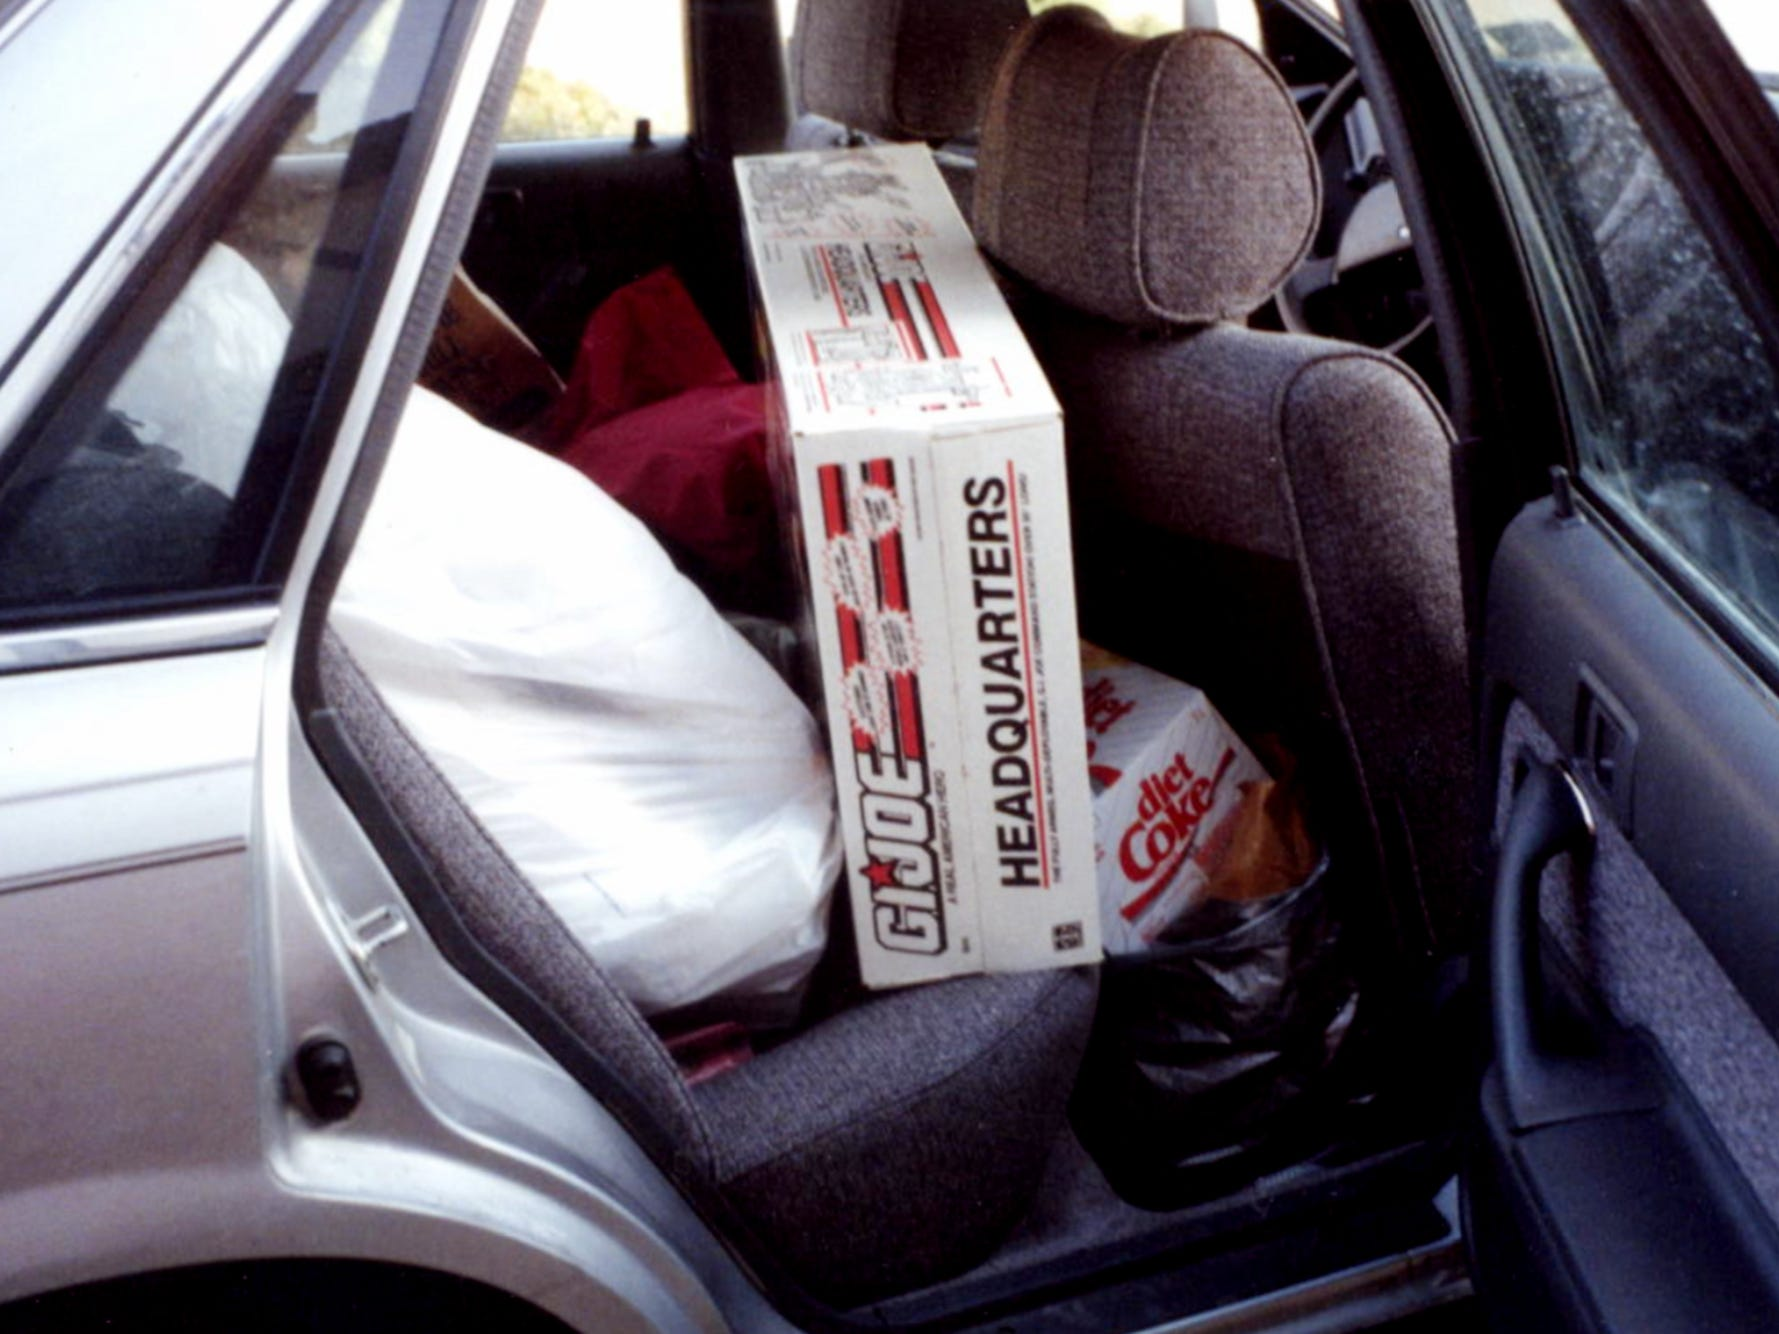 Jacci Rodgers and Marcia Thorpe pack the car after shopping Mall of America on Black Friday.